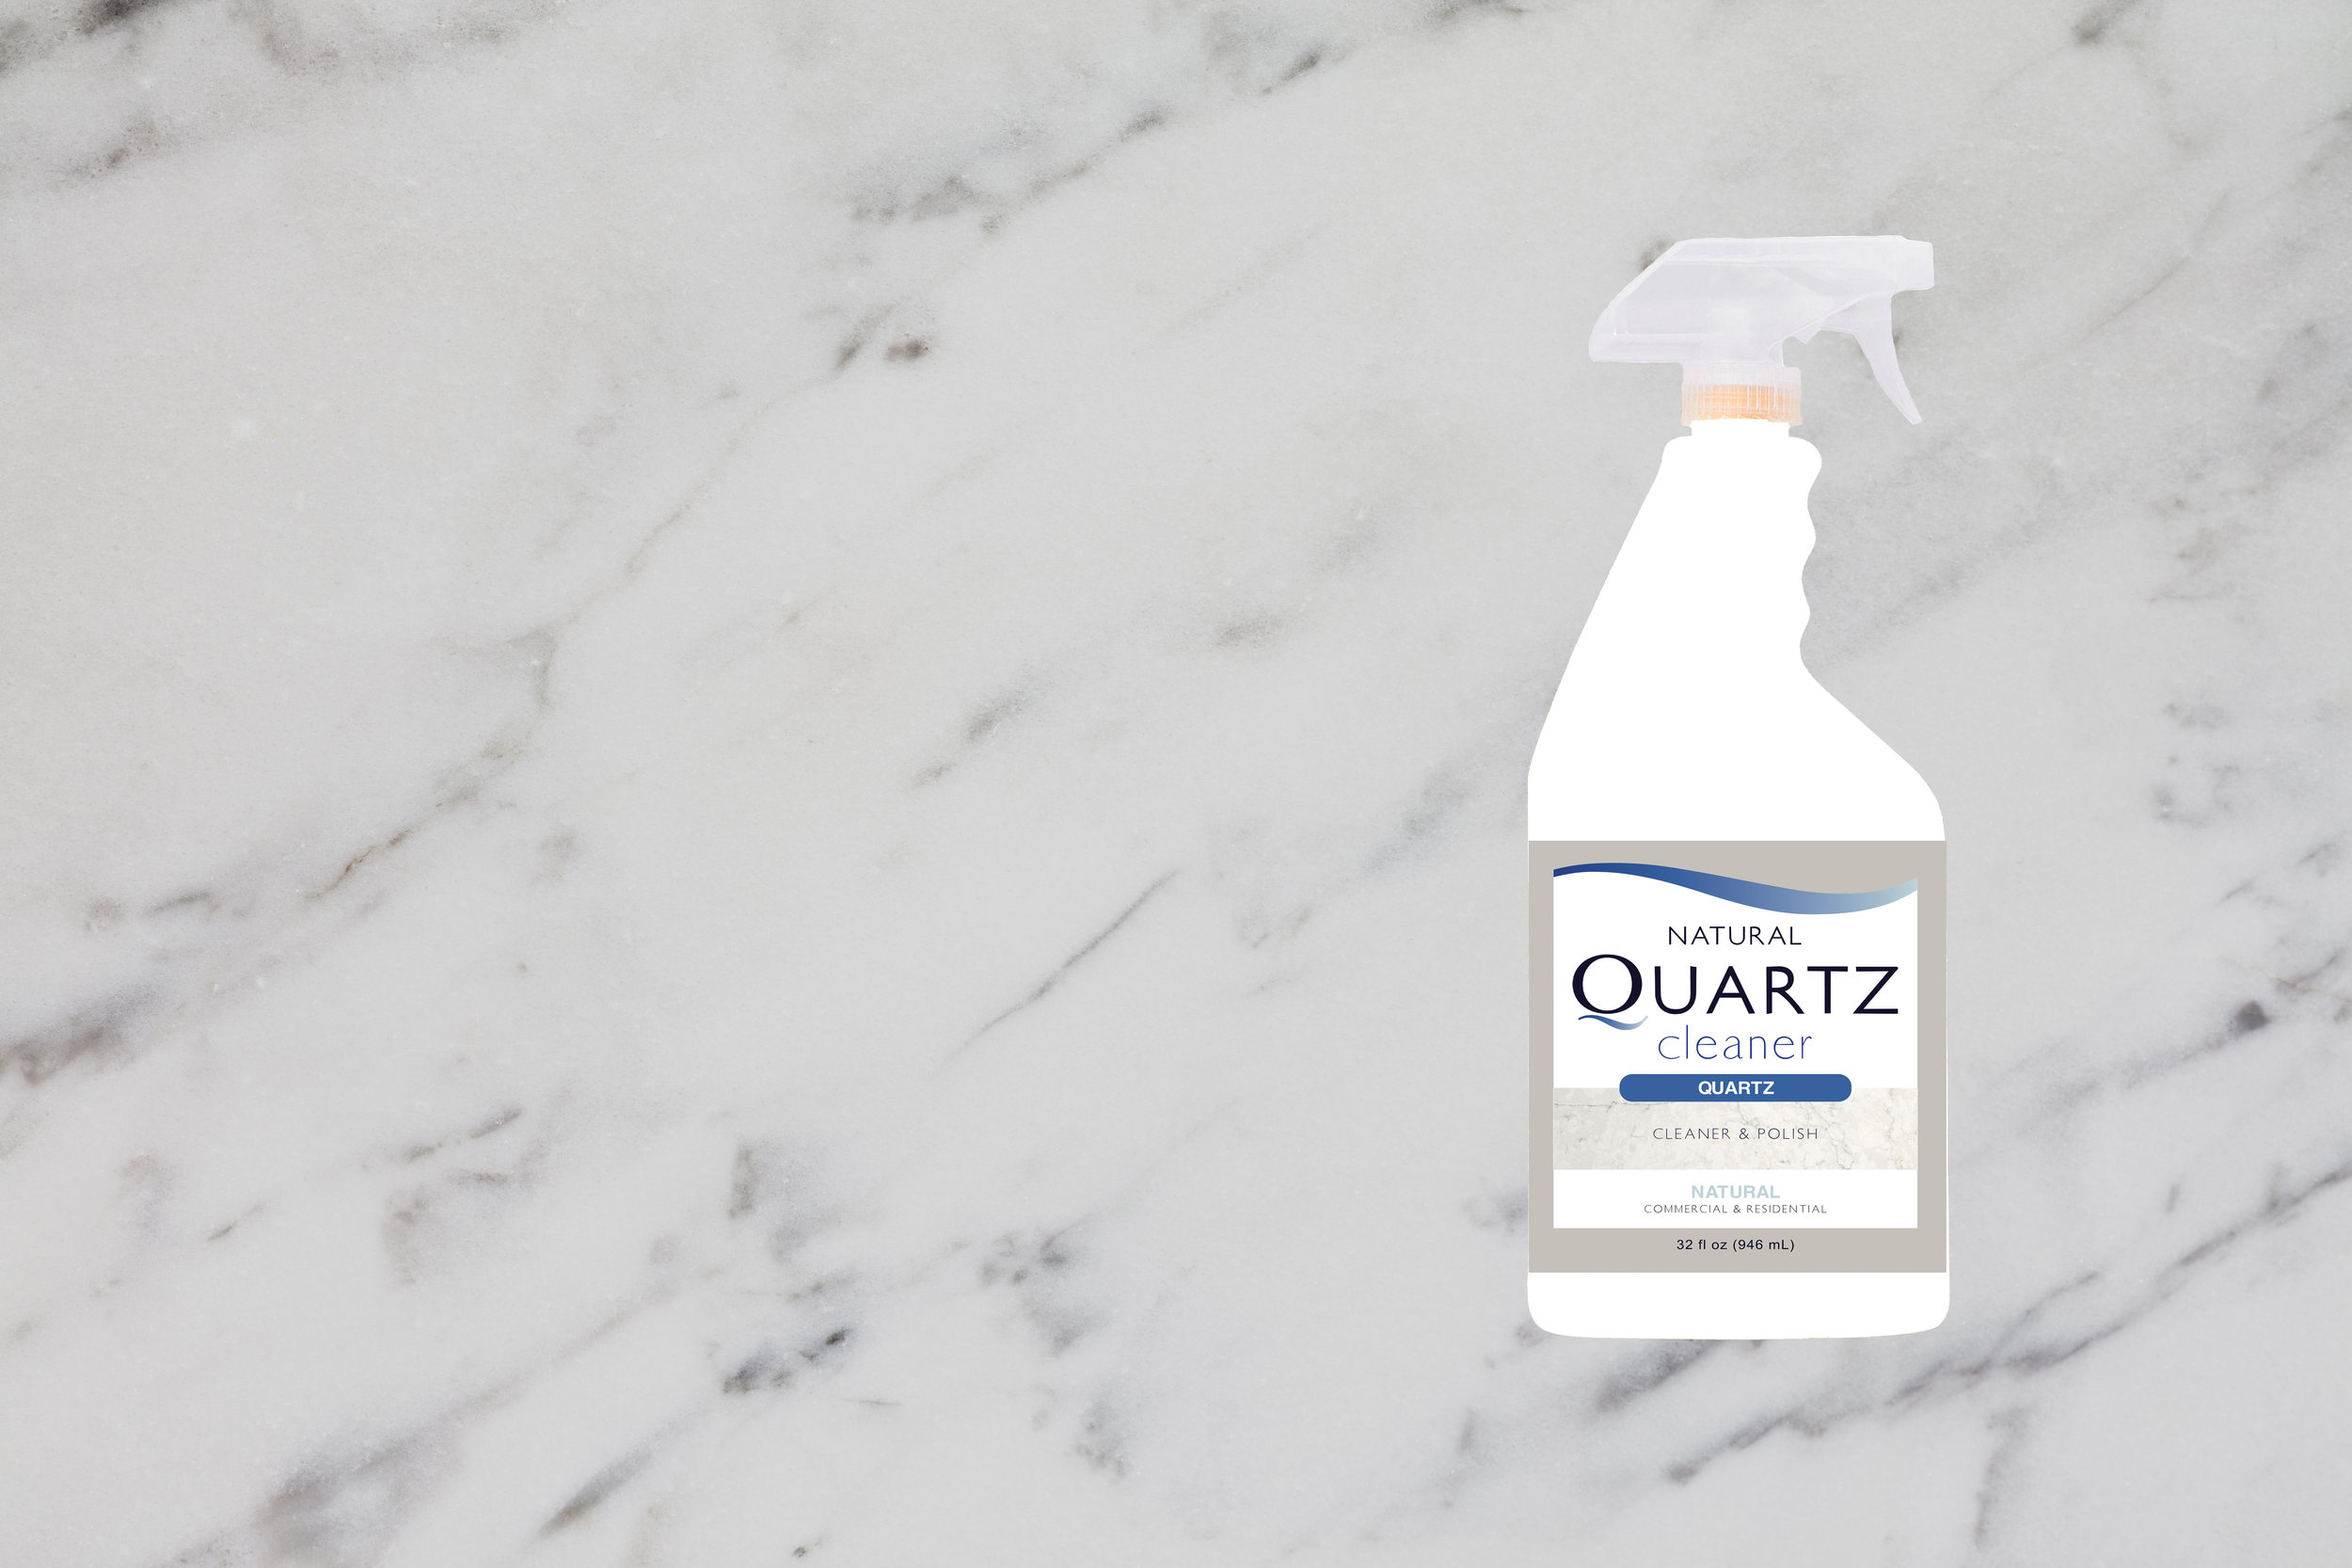 Natural Quartz Cleaners